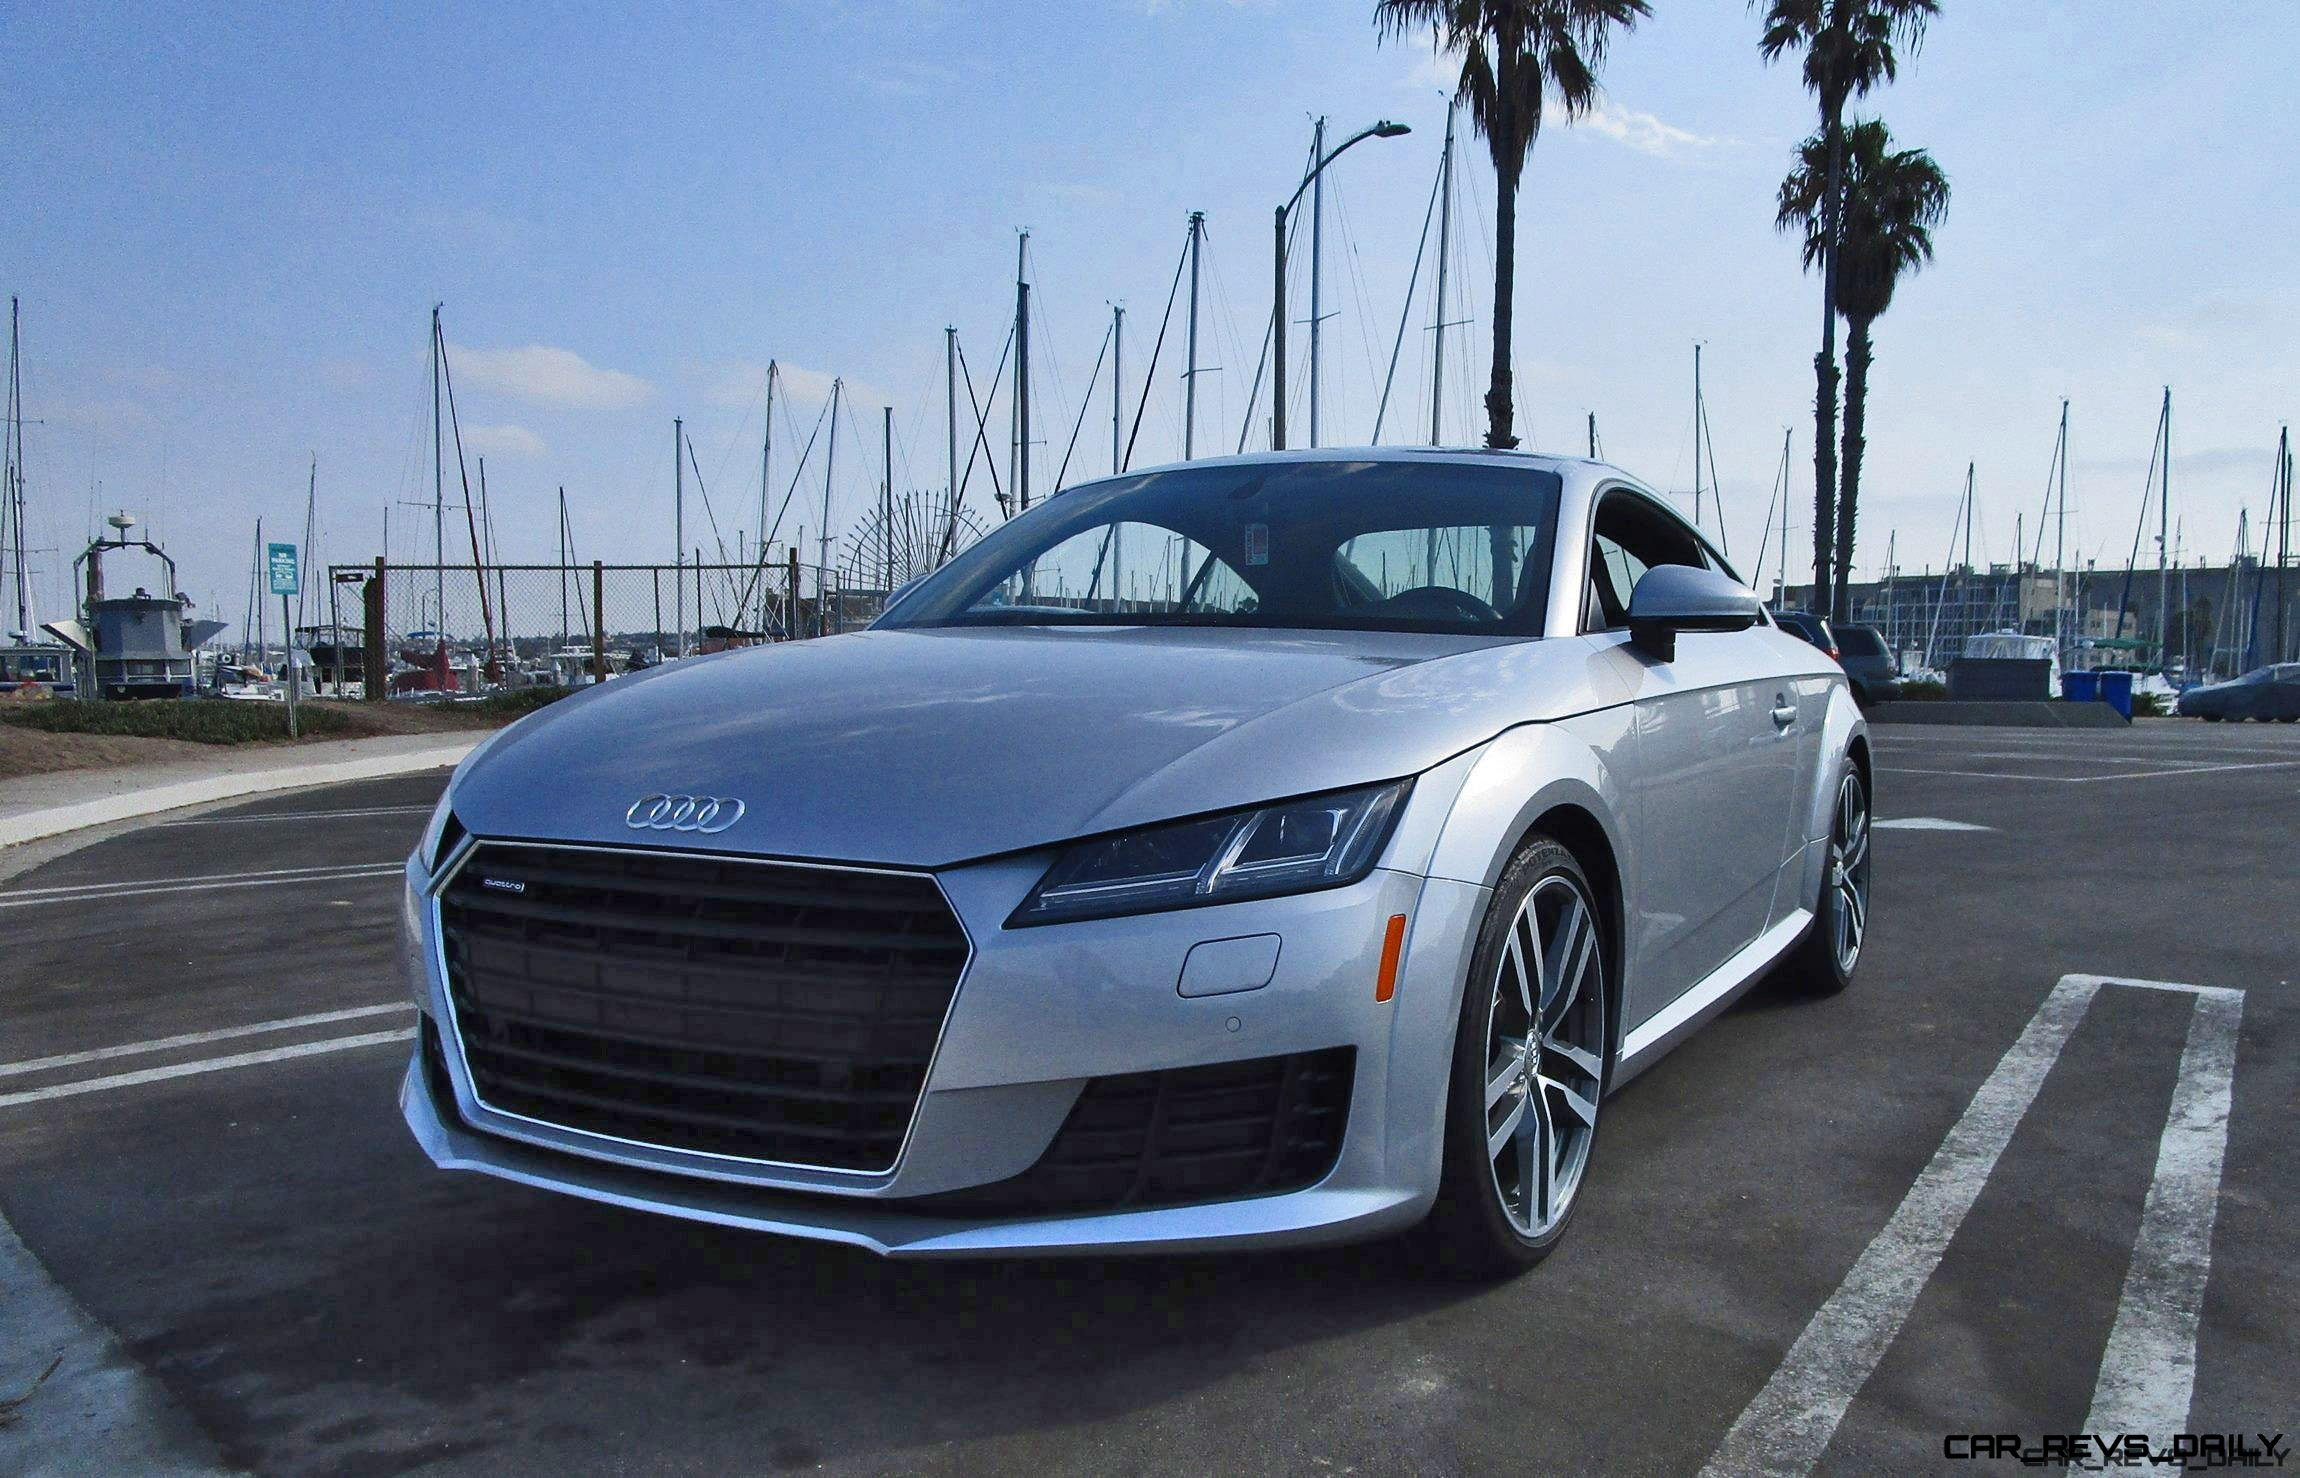 2016 audi tt coupe 2 0t quattro s tronic road test review by ben lewis. Black Bedroom Furniture Sets. Home Design Ideas